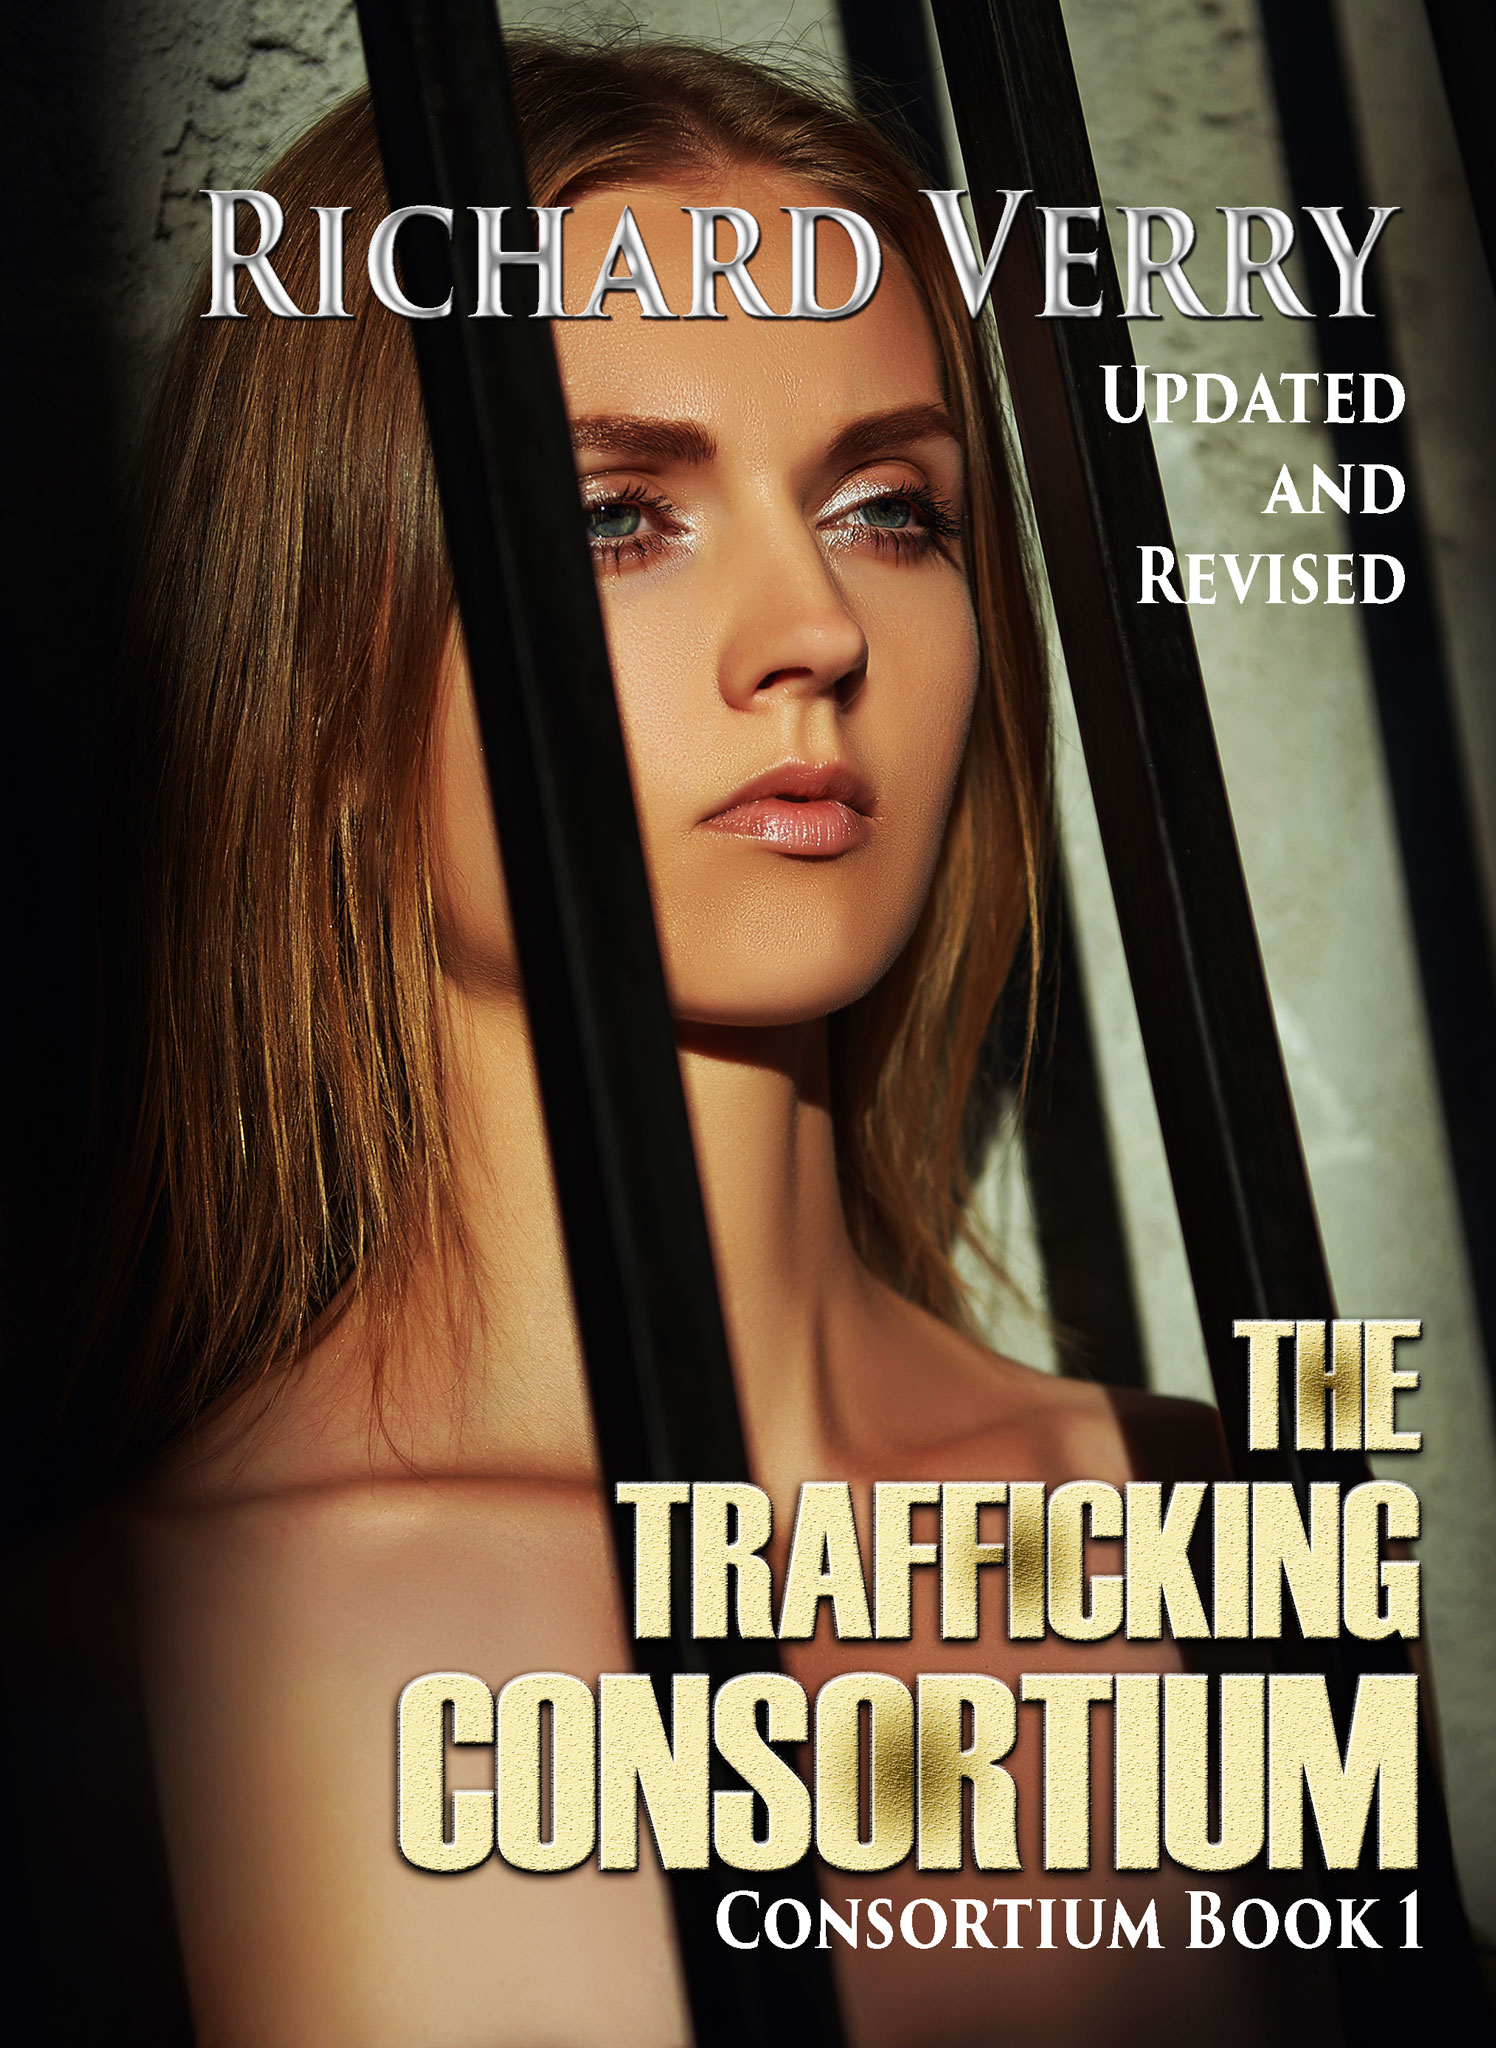 The Trafficking Consortium Front Book Cover